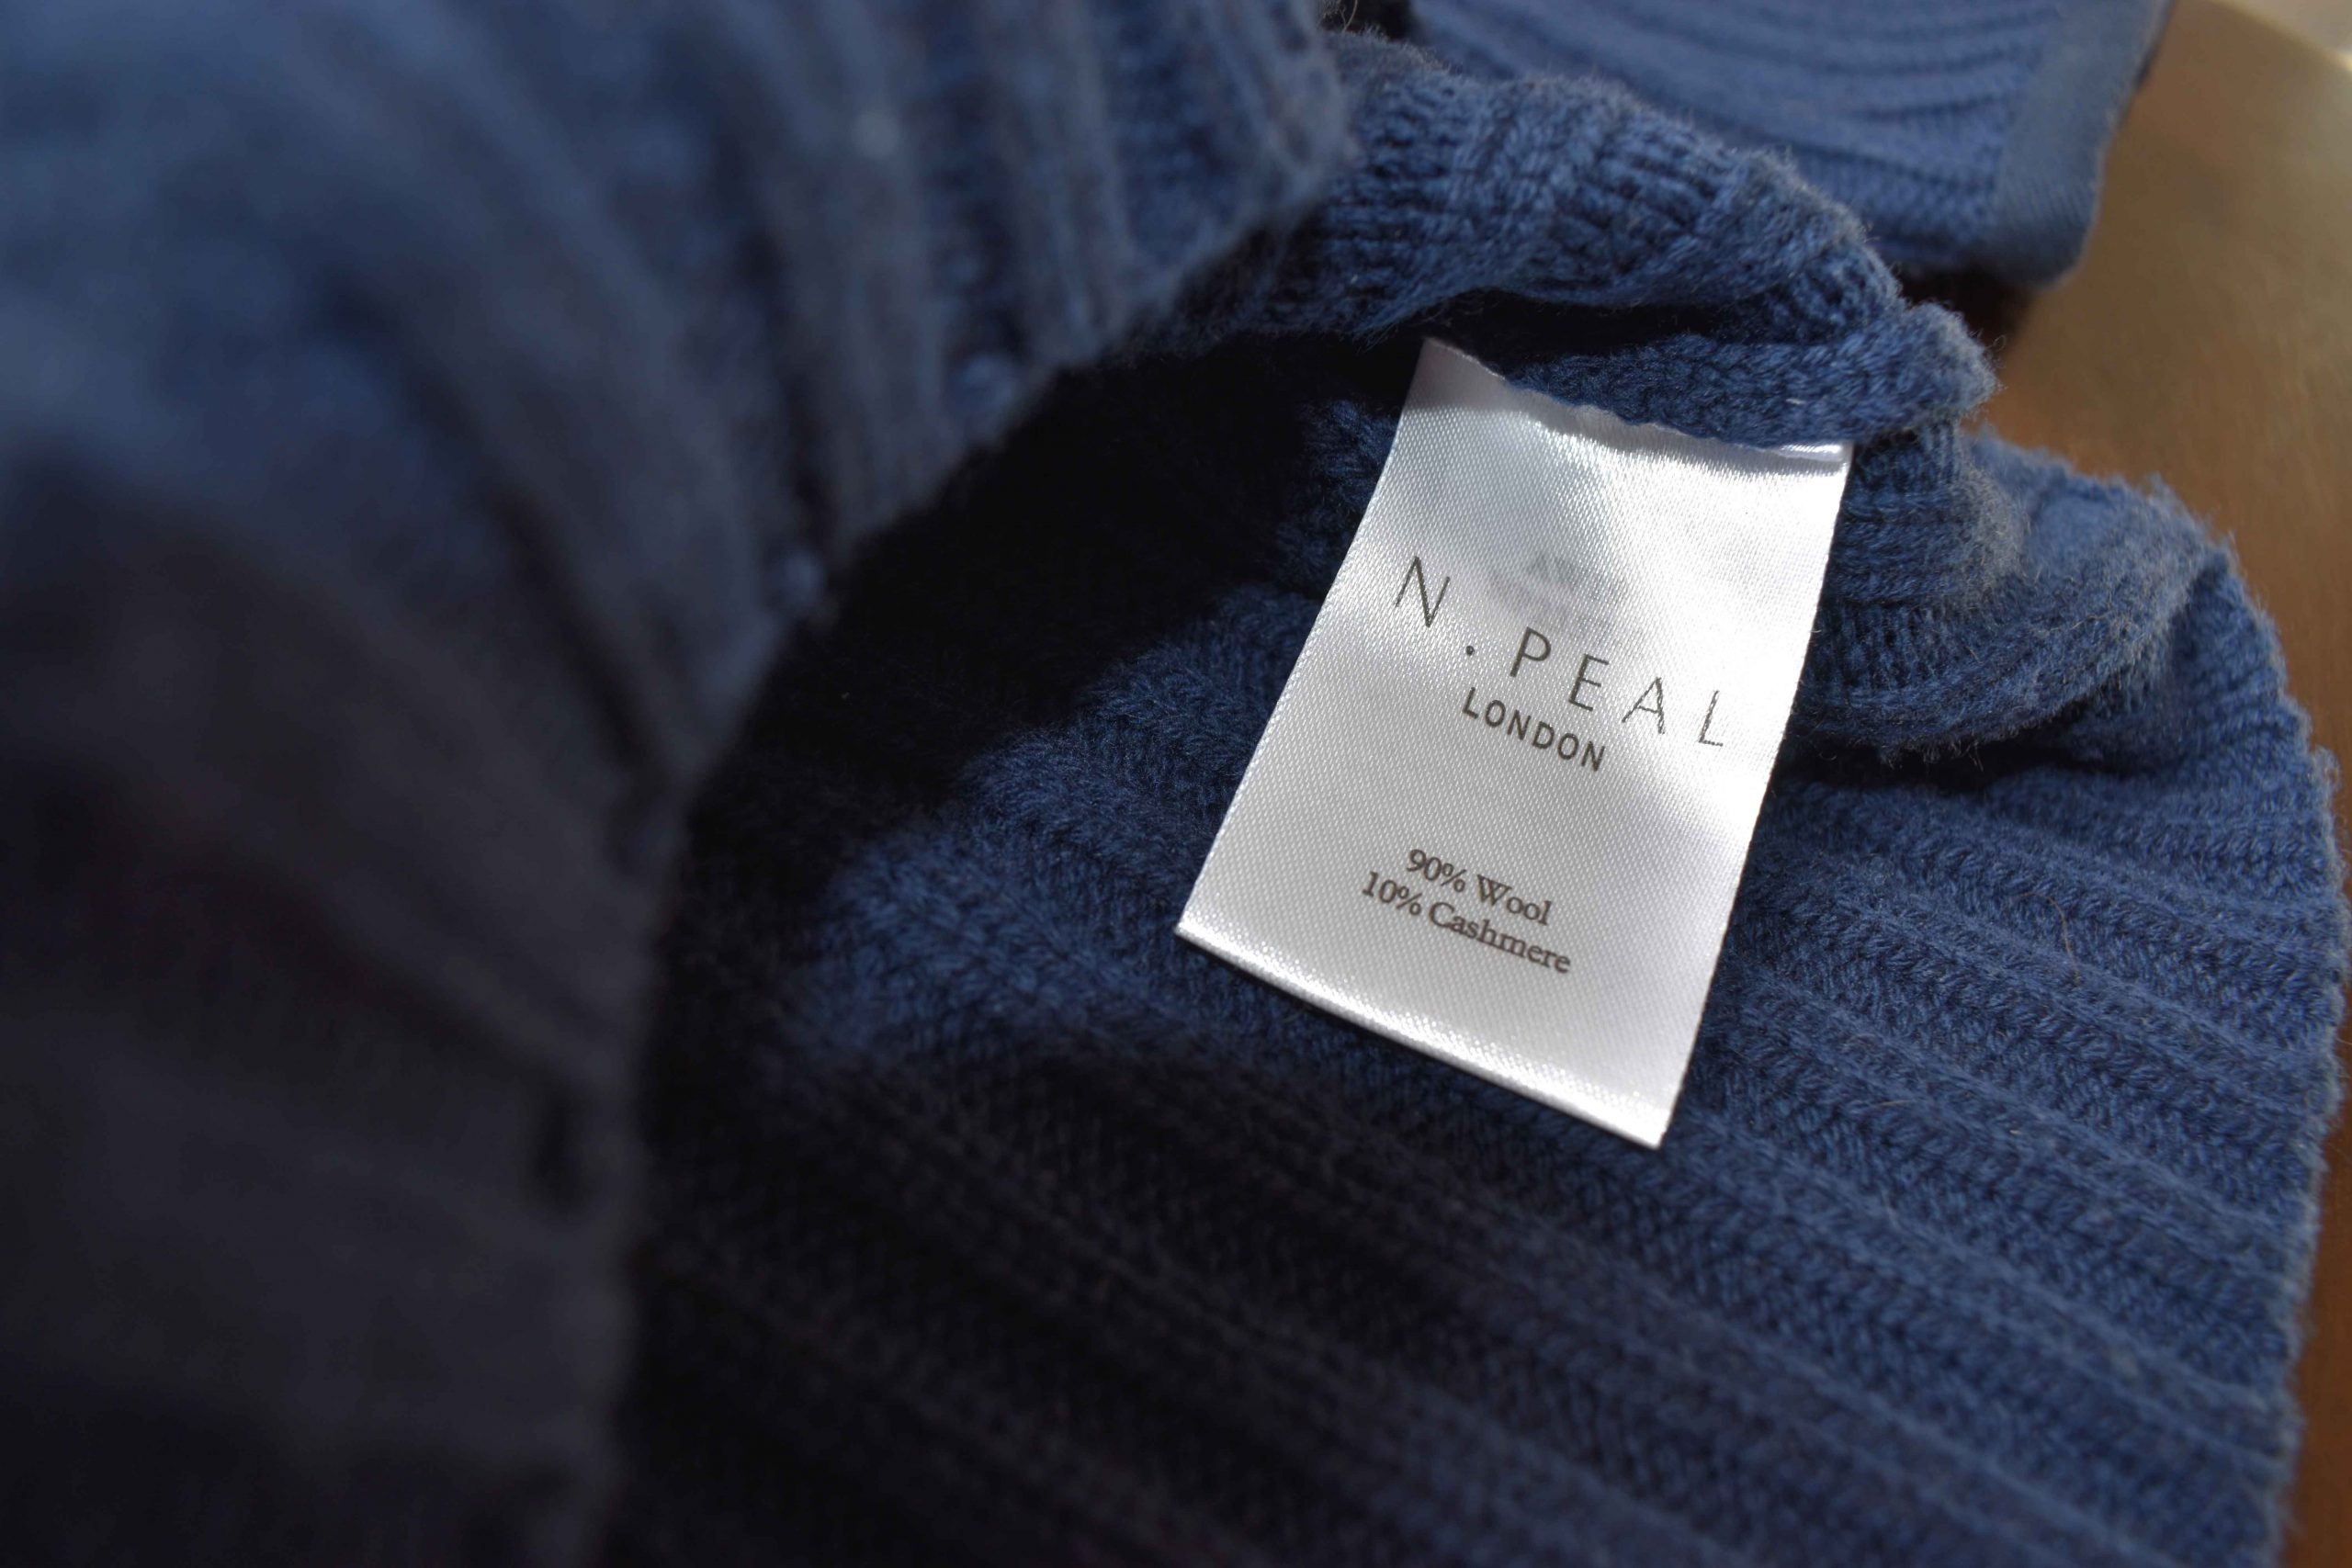 N.Peal cashmere label